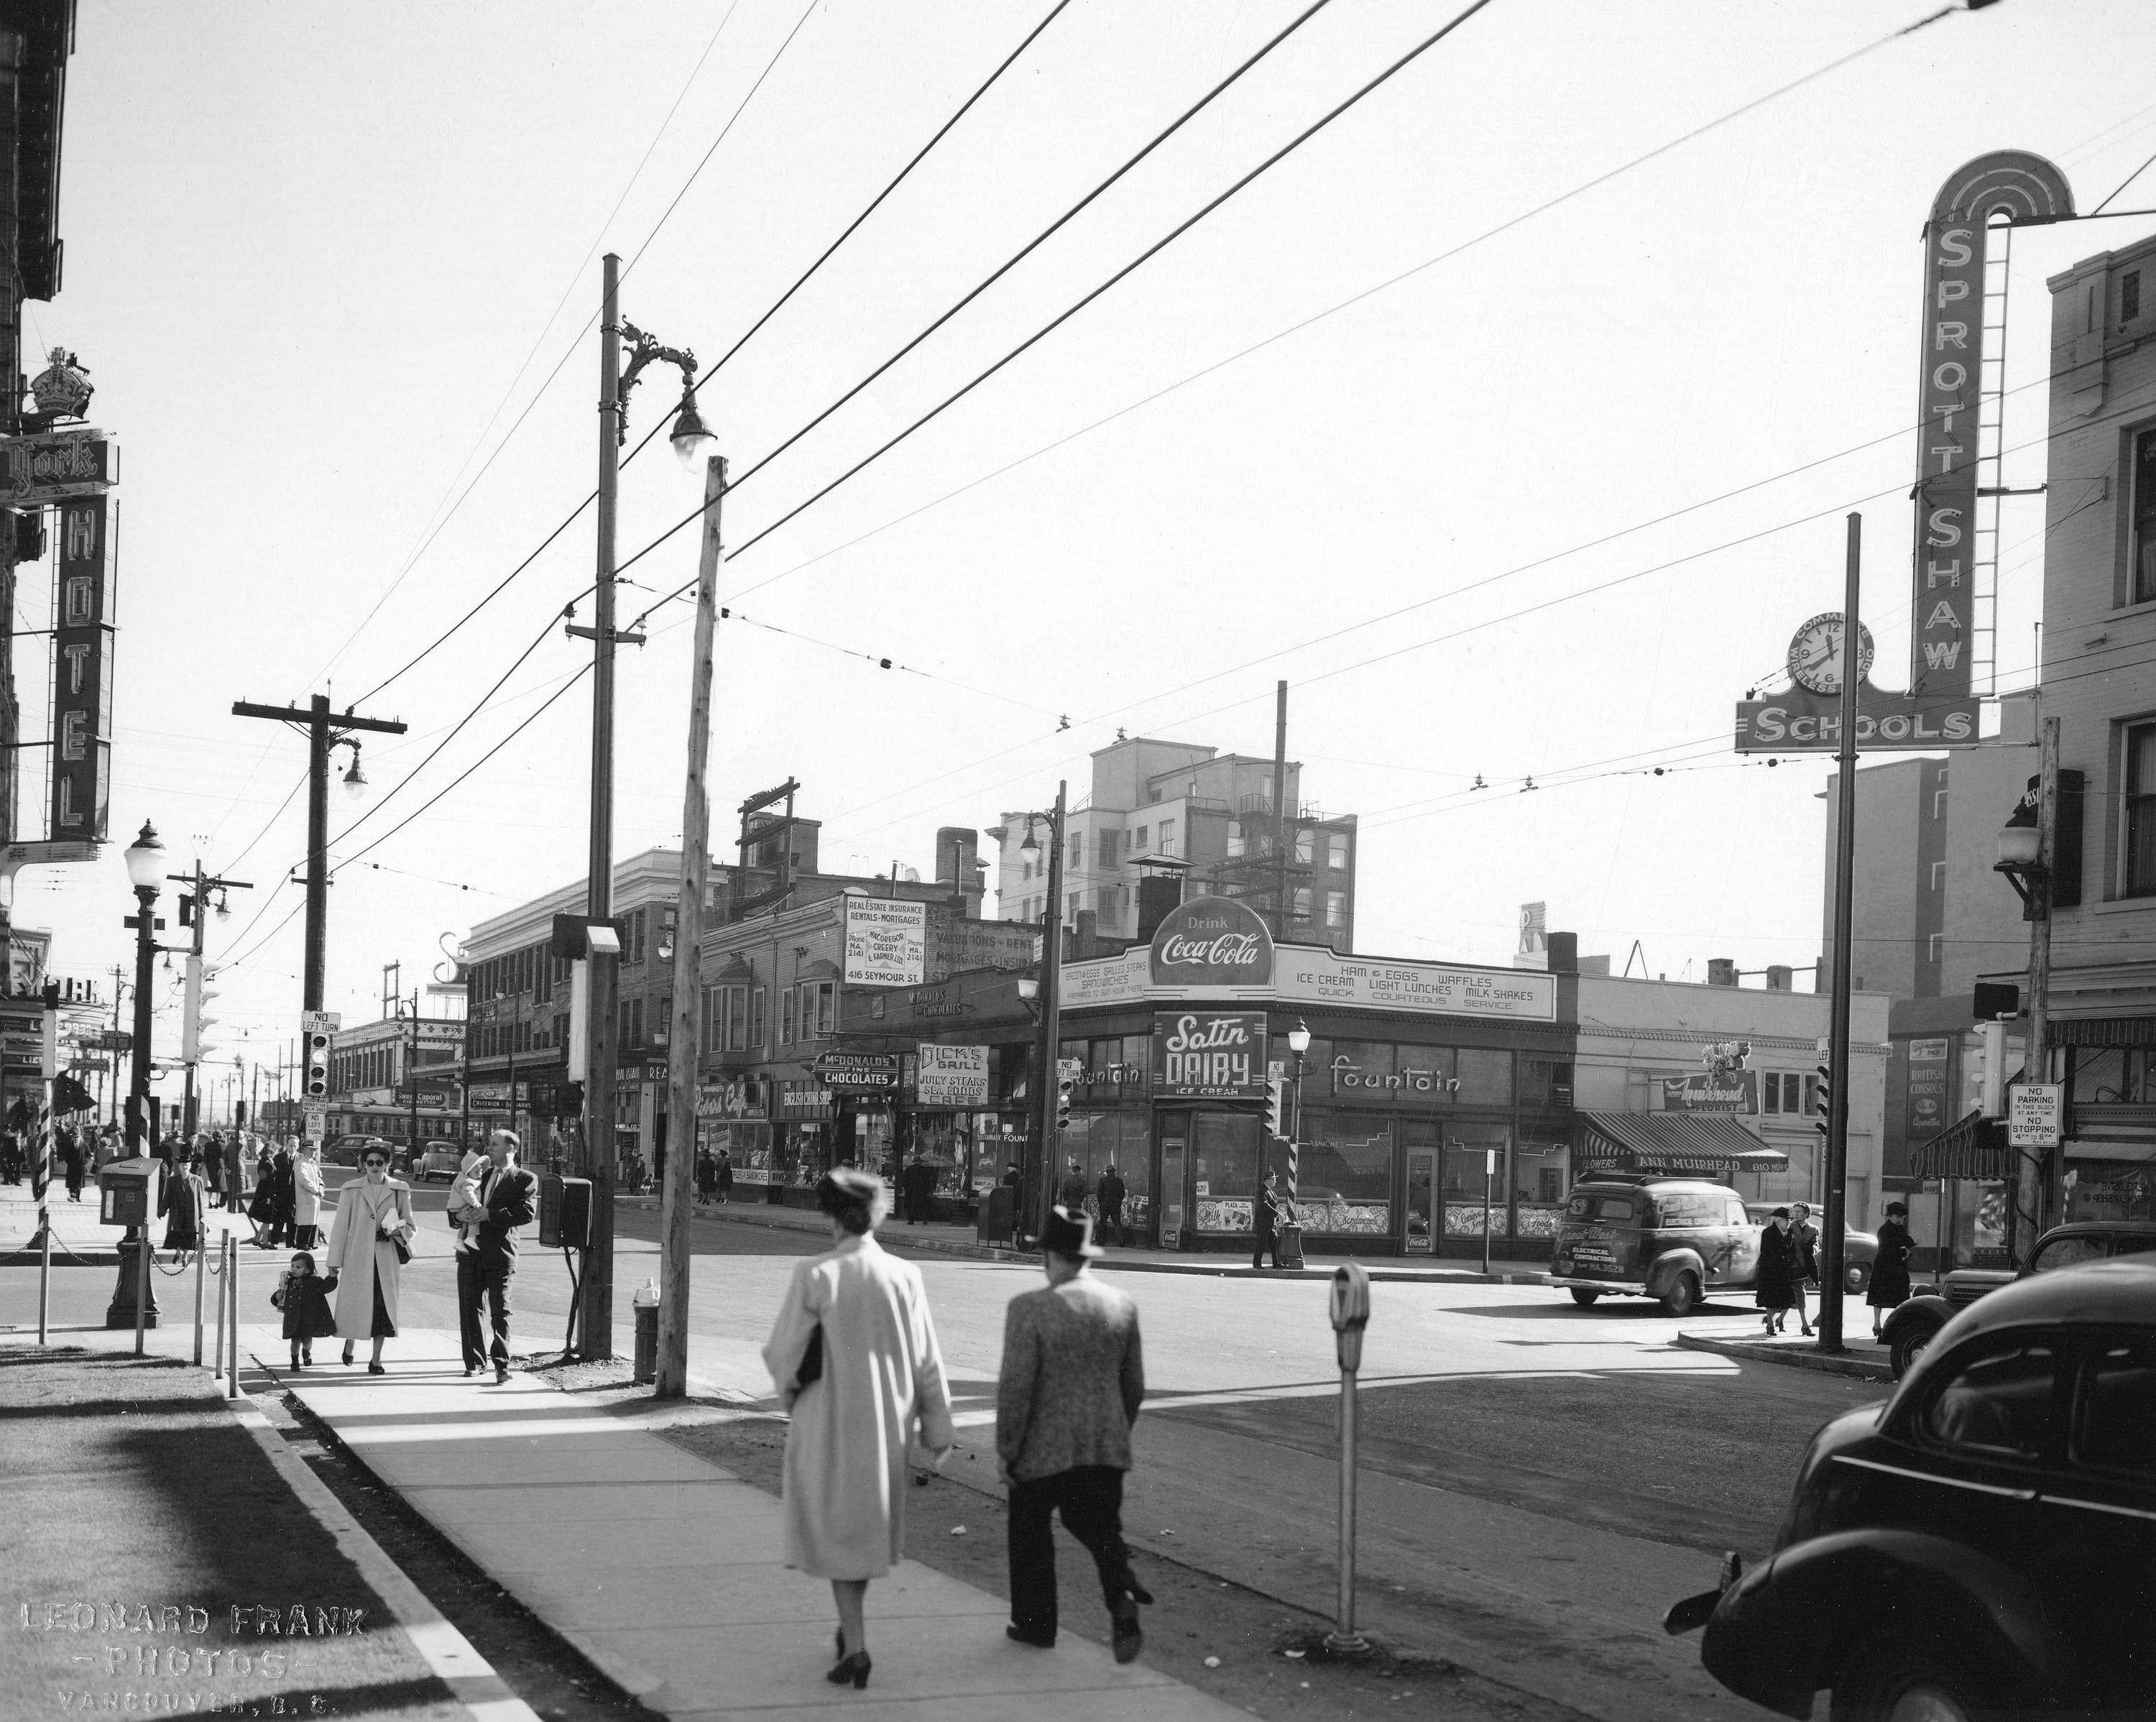 Str P258 - [The south side of Robson Street looking east from Howe Street] 1948 O F Landauer photo